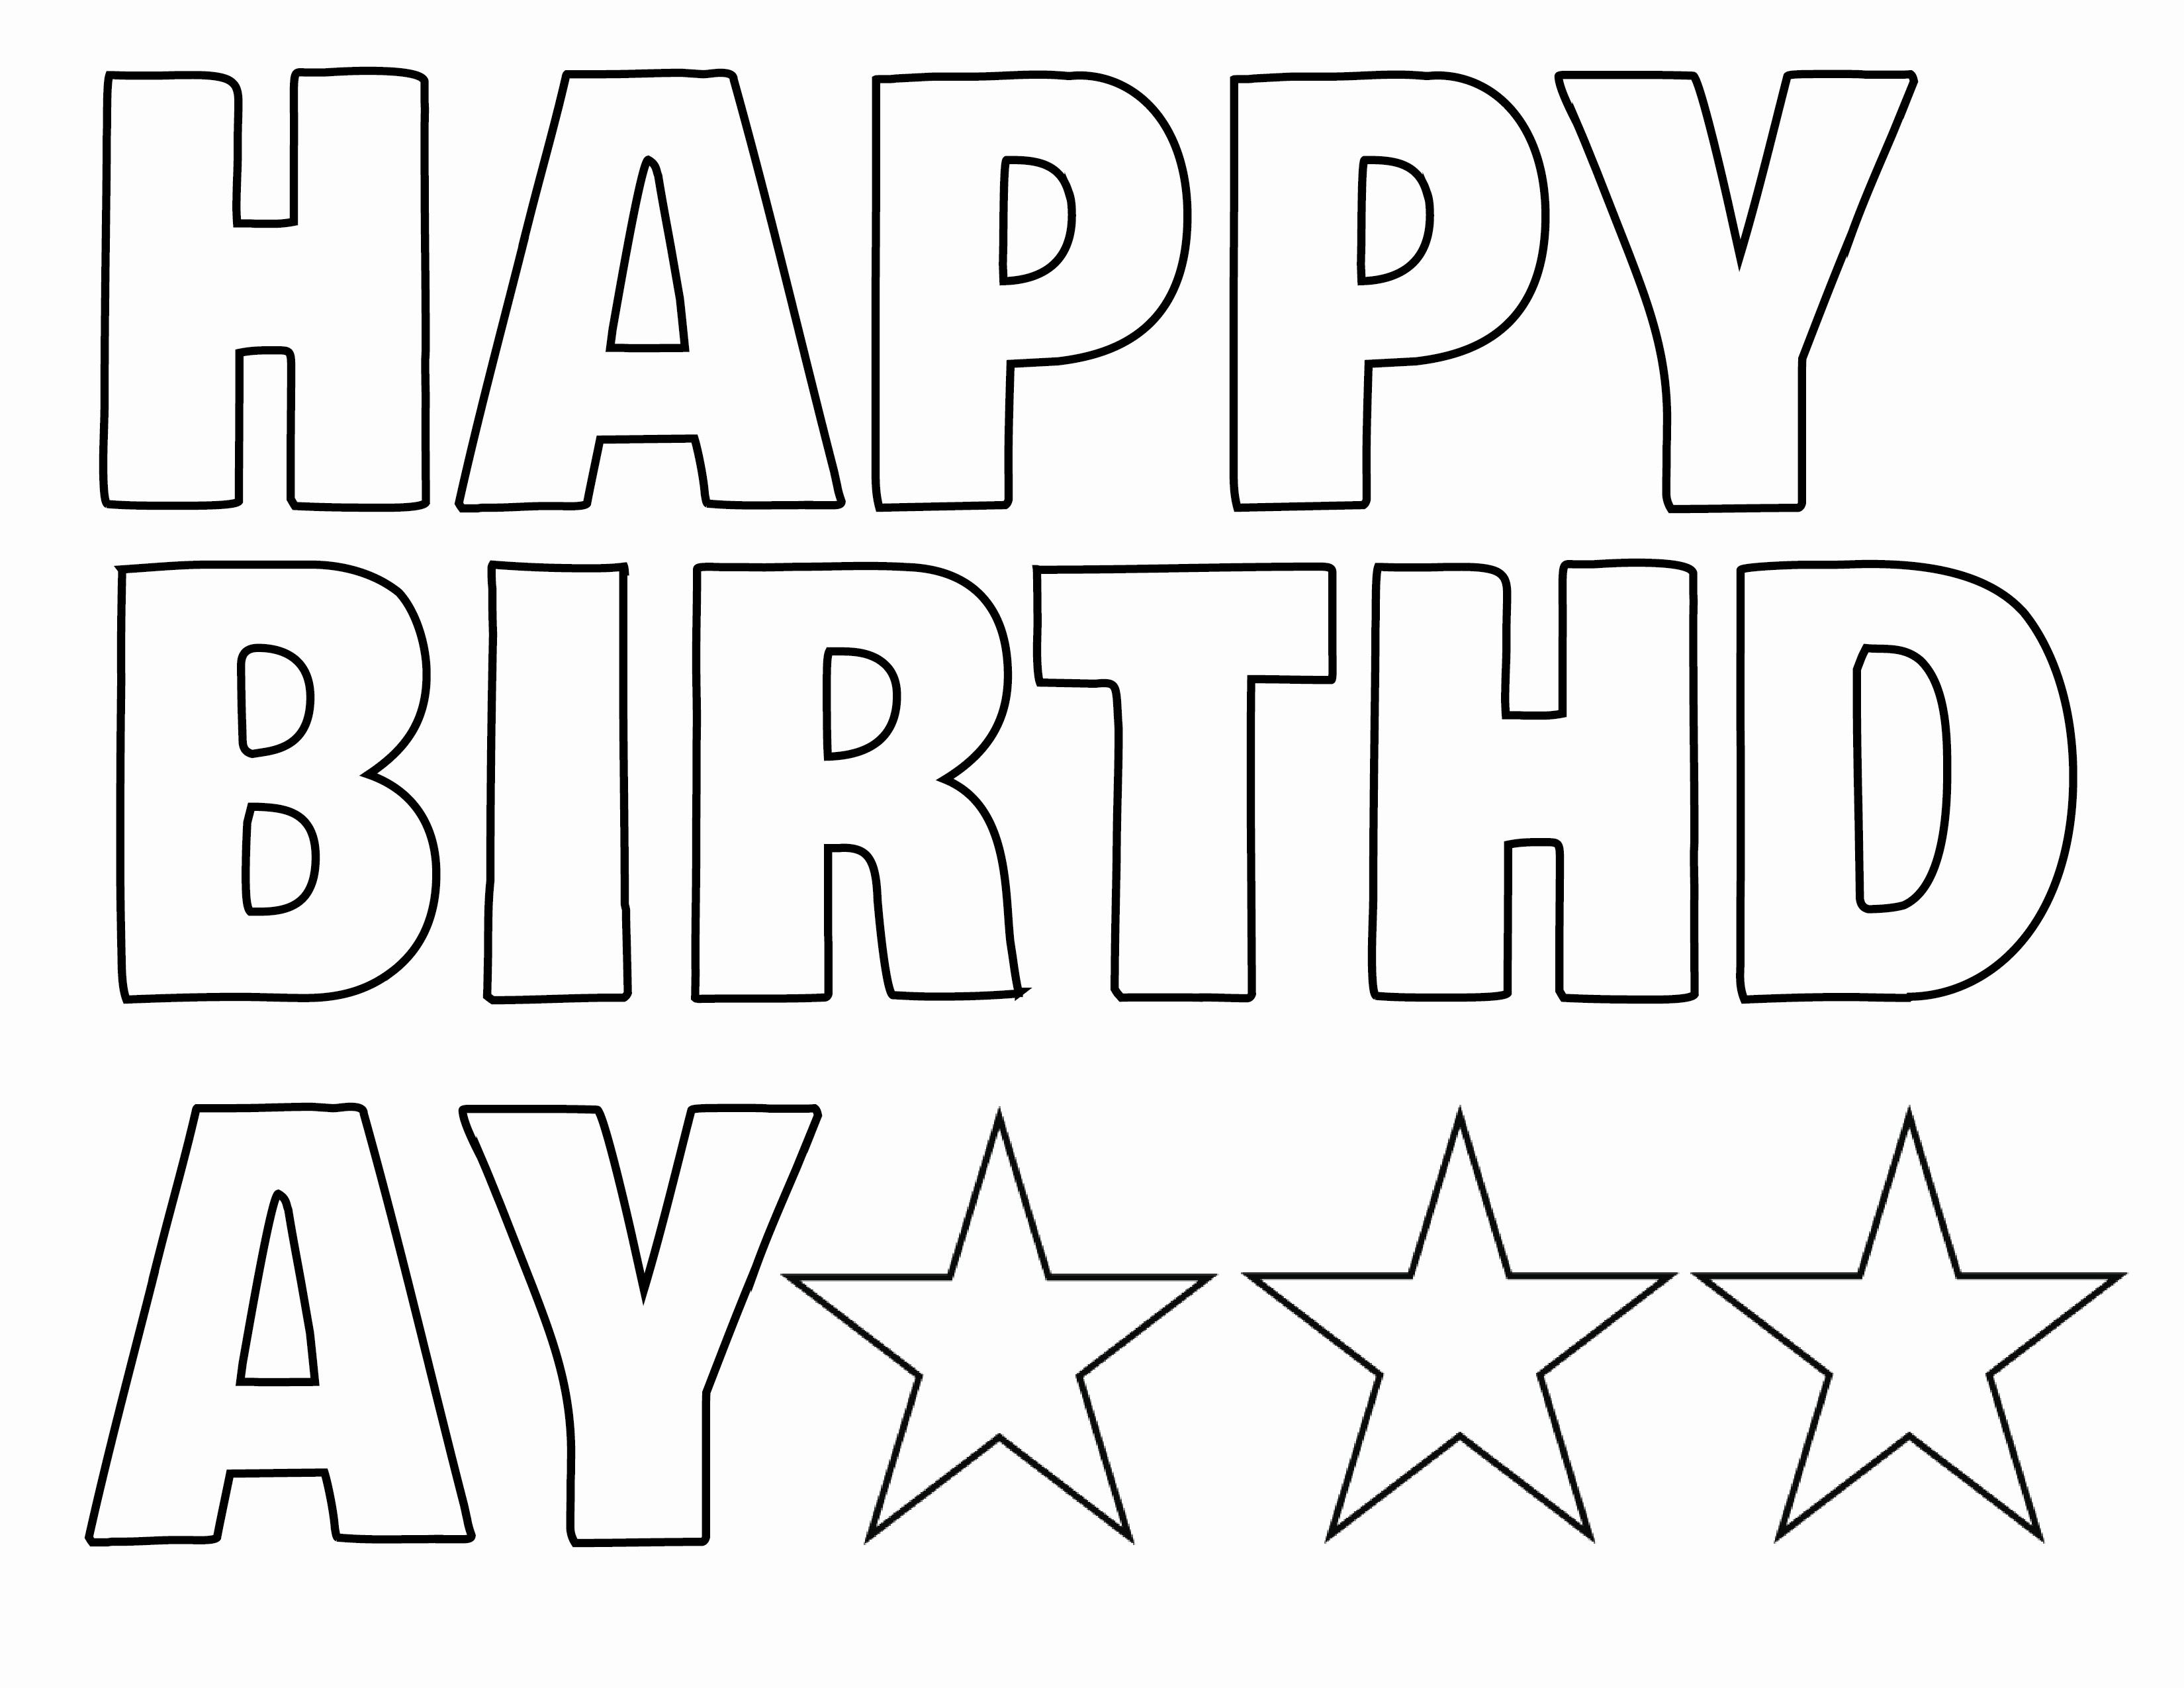 Happy Birthday Letters to Print Best Of Happy Birthday Letters to Print Printable 360 Degree